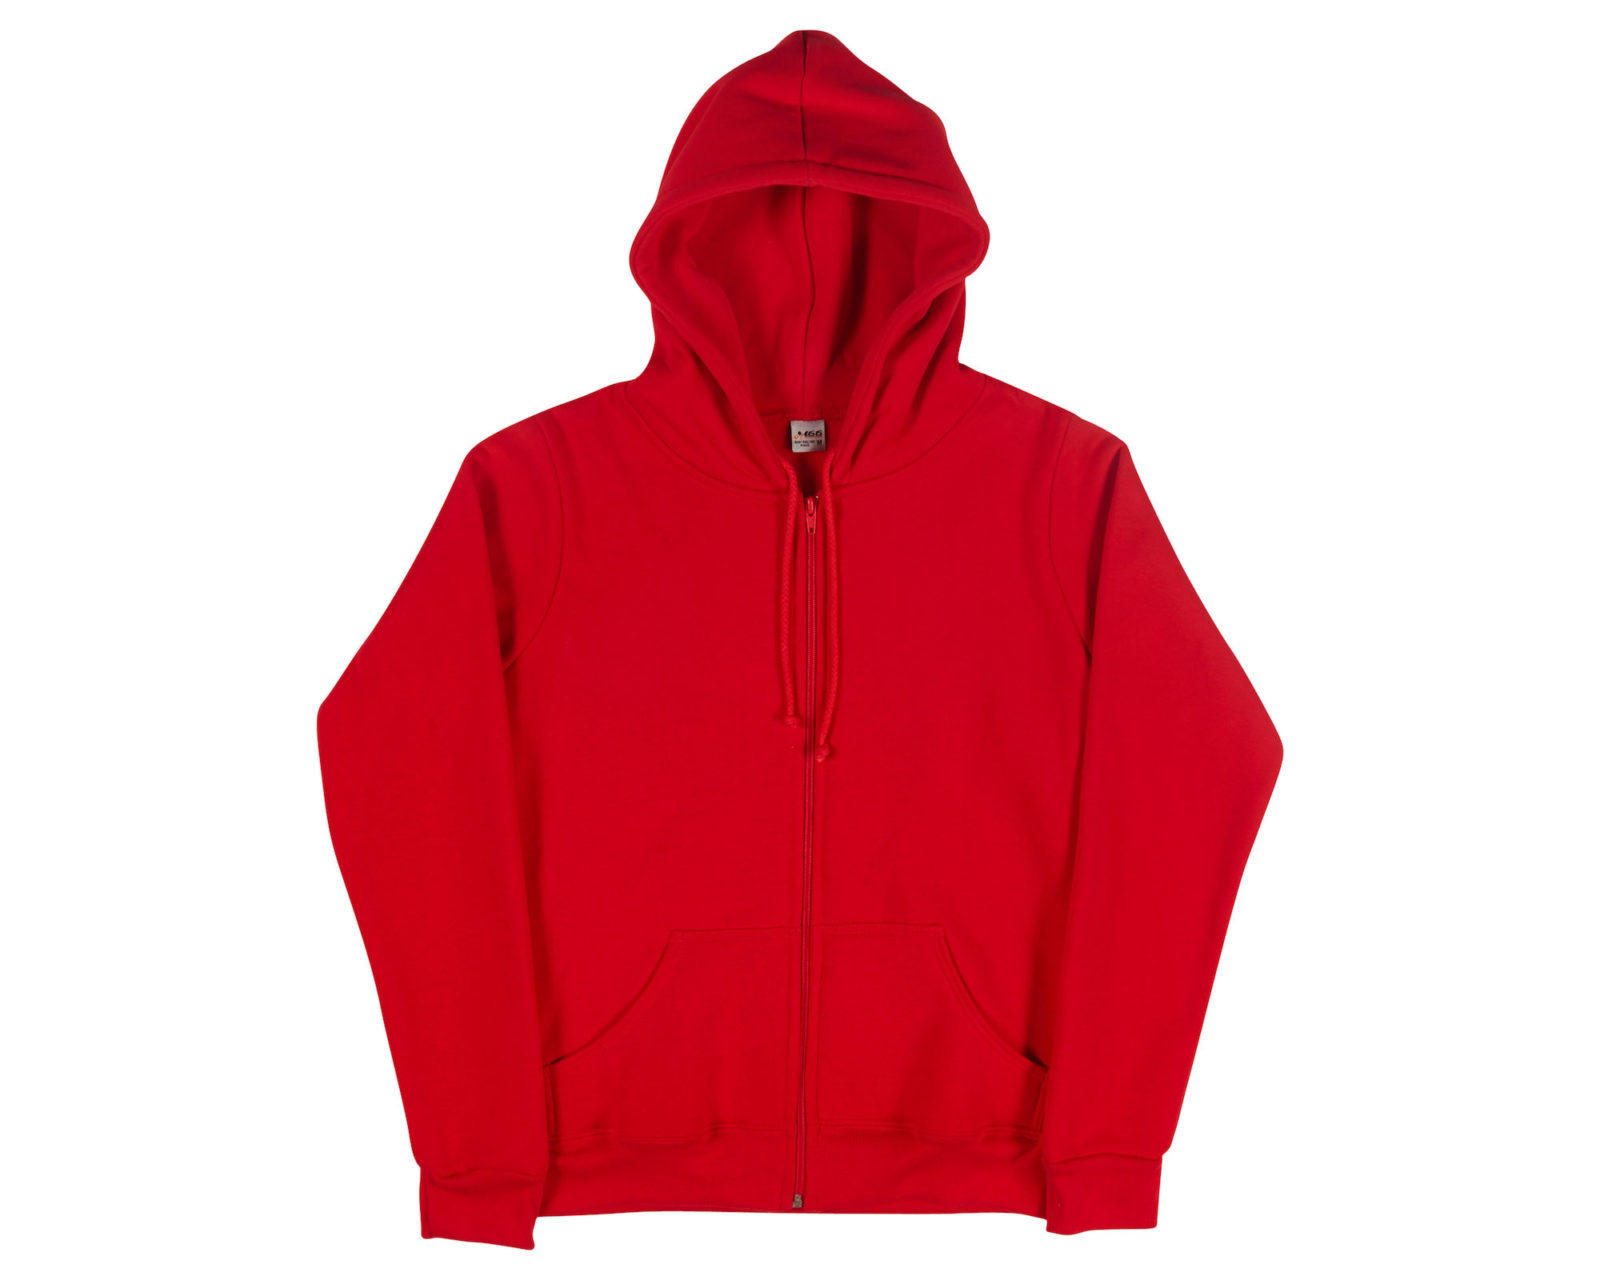 Qualitops Womens Zip Hoodie Polycotton Australian made clothing